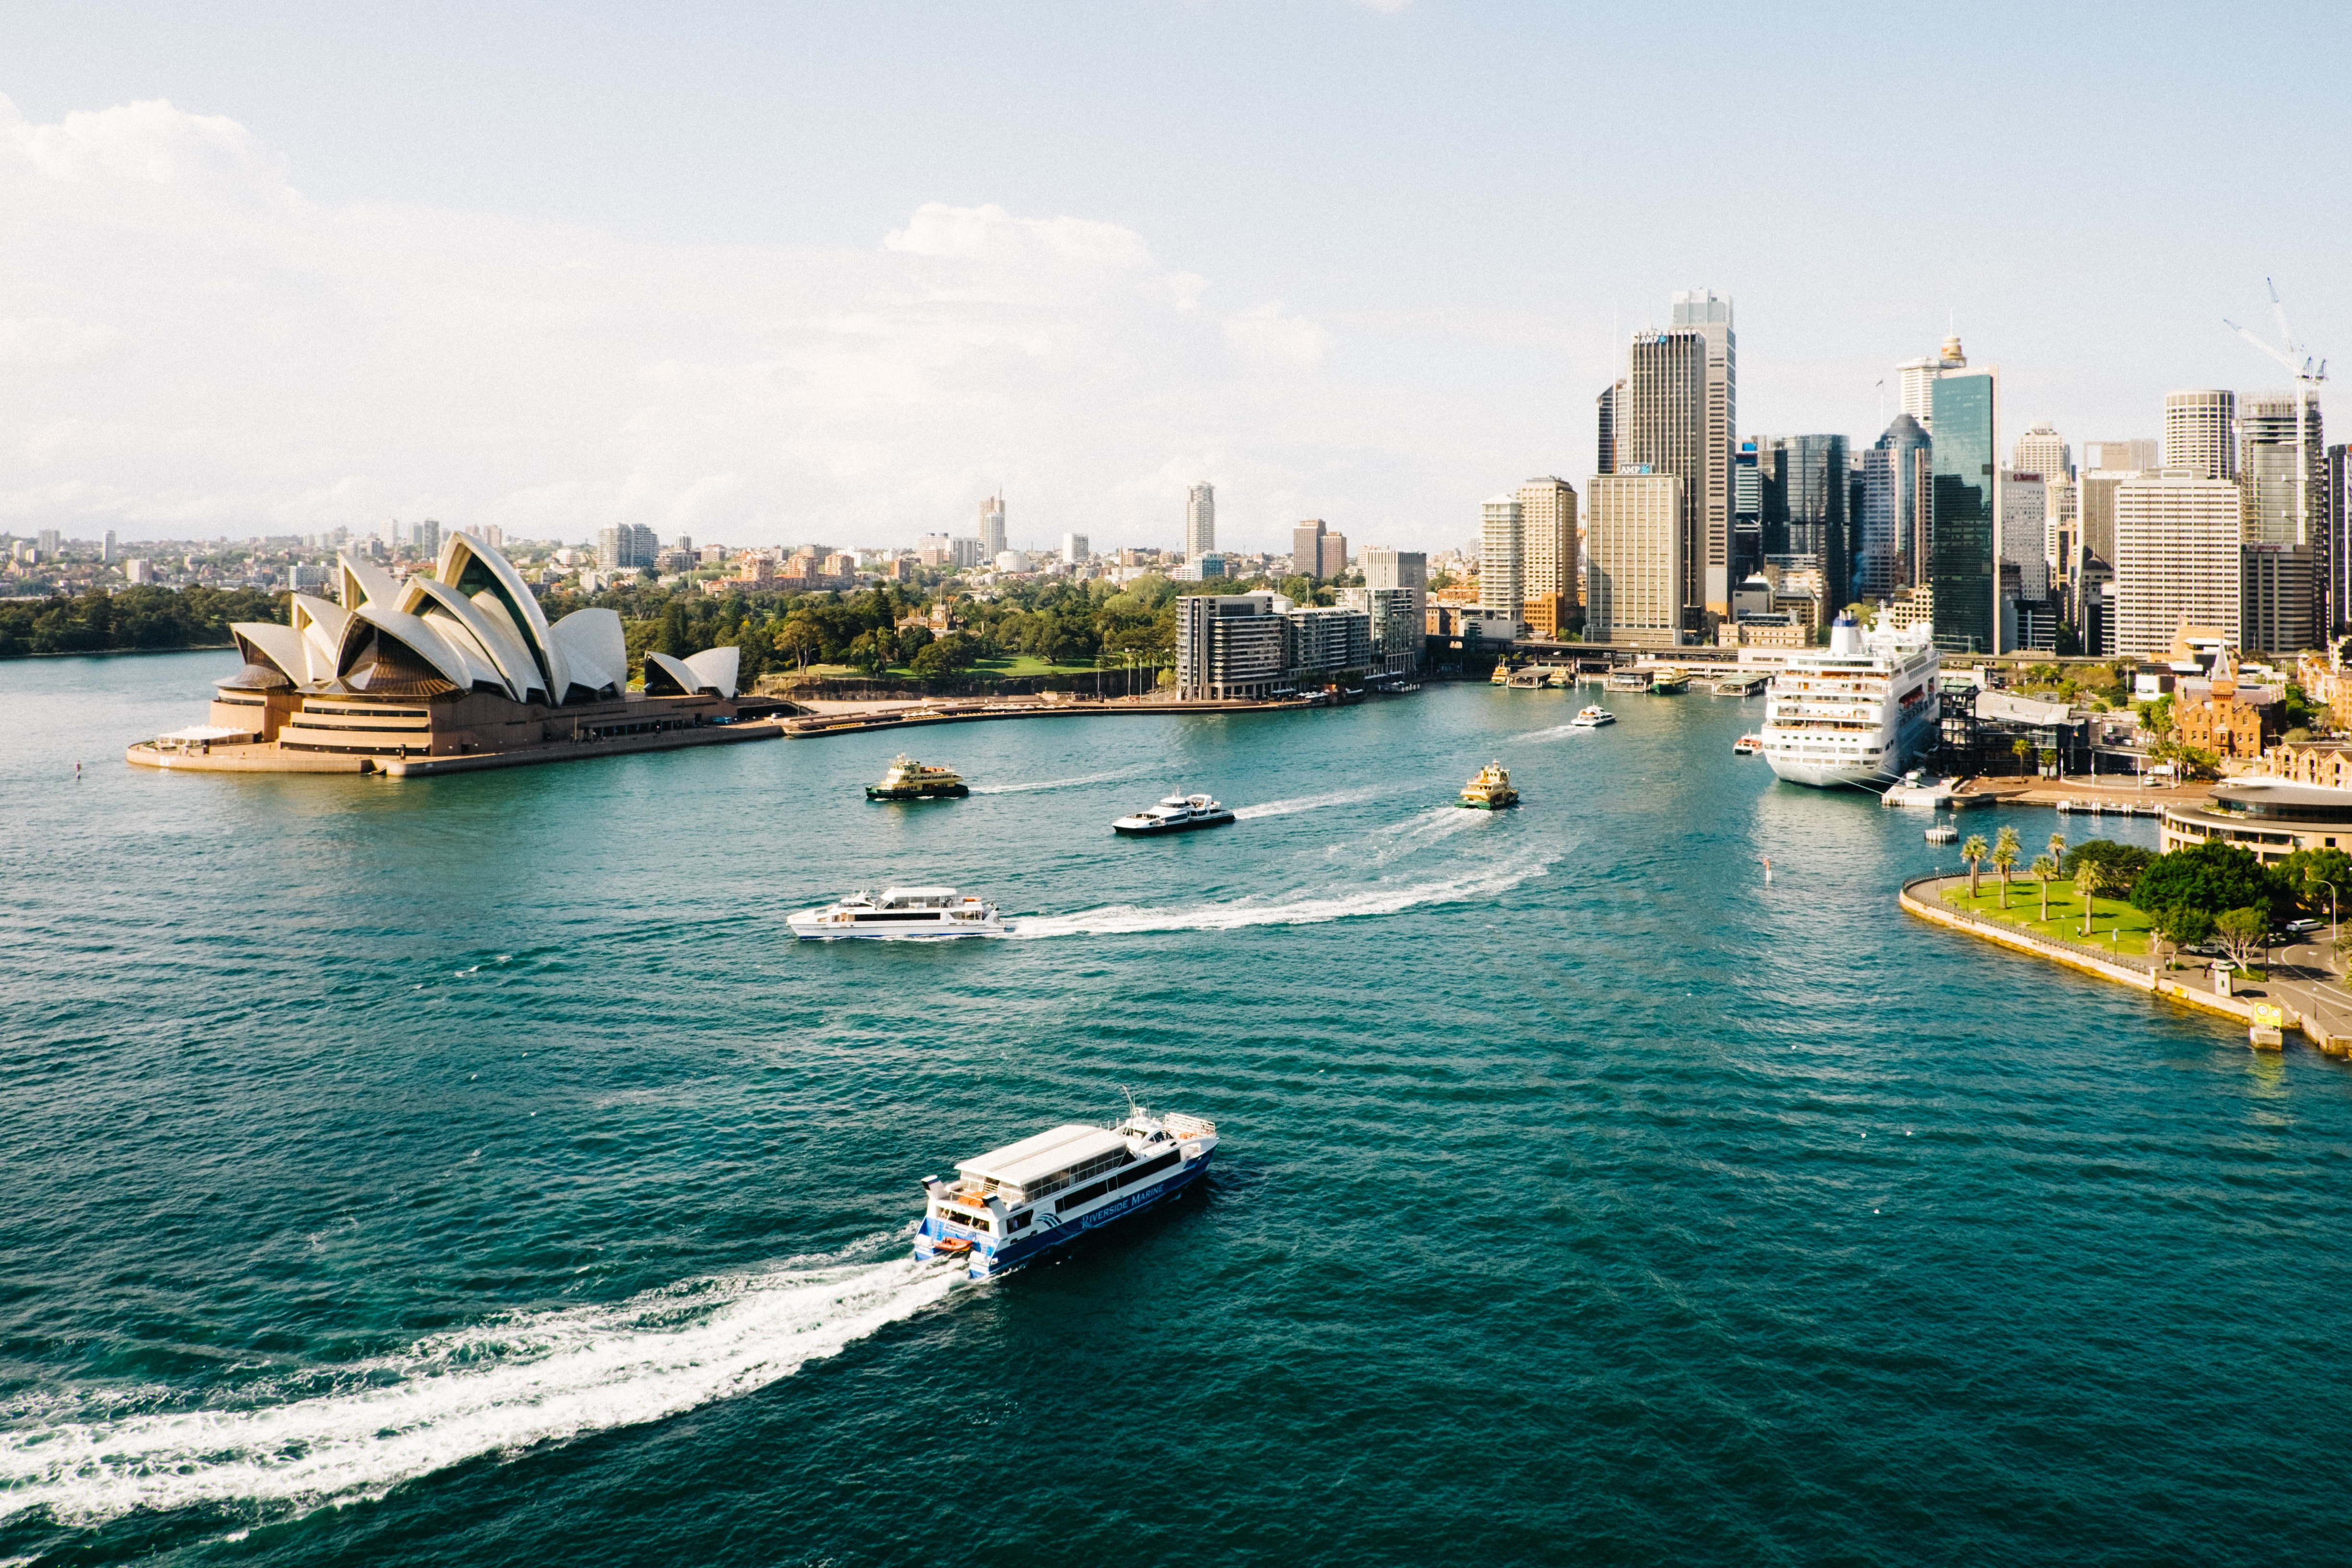 Aerial view of Sydney, Australia, with a boat racing towards the city.